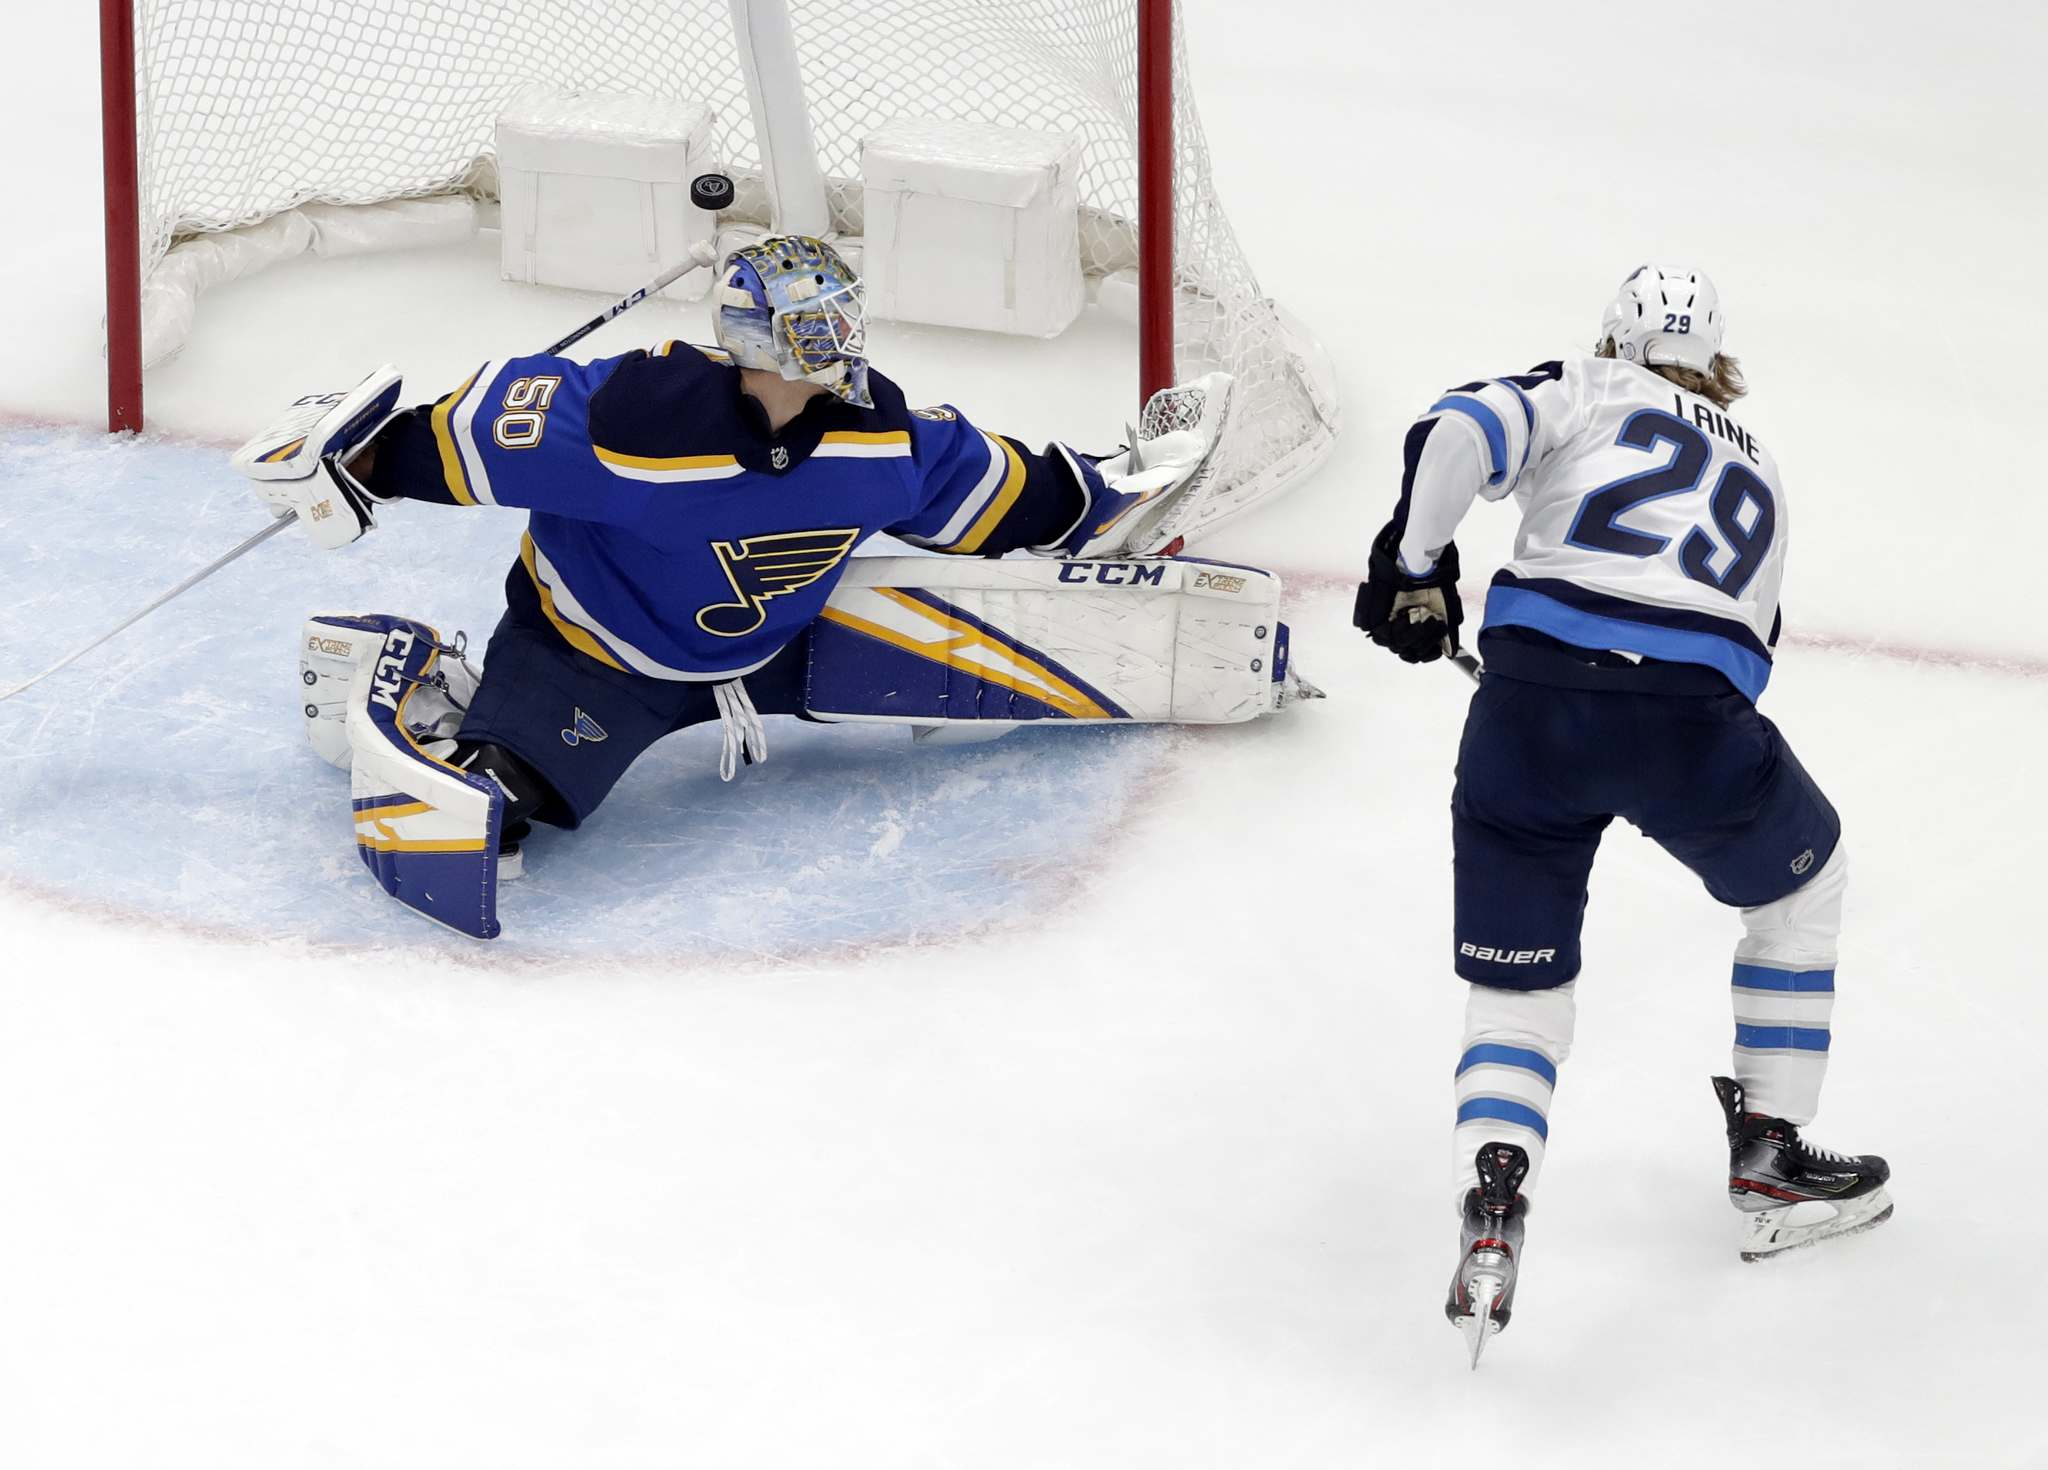 Patrik Laine has scored on Jordan Binnington in each of the three games of the series. (Jeff Roberson / The Associated Press)</p>